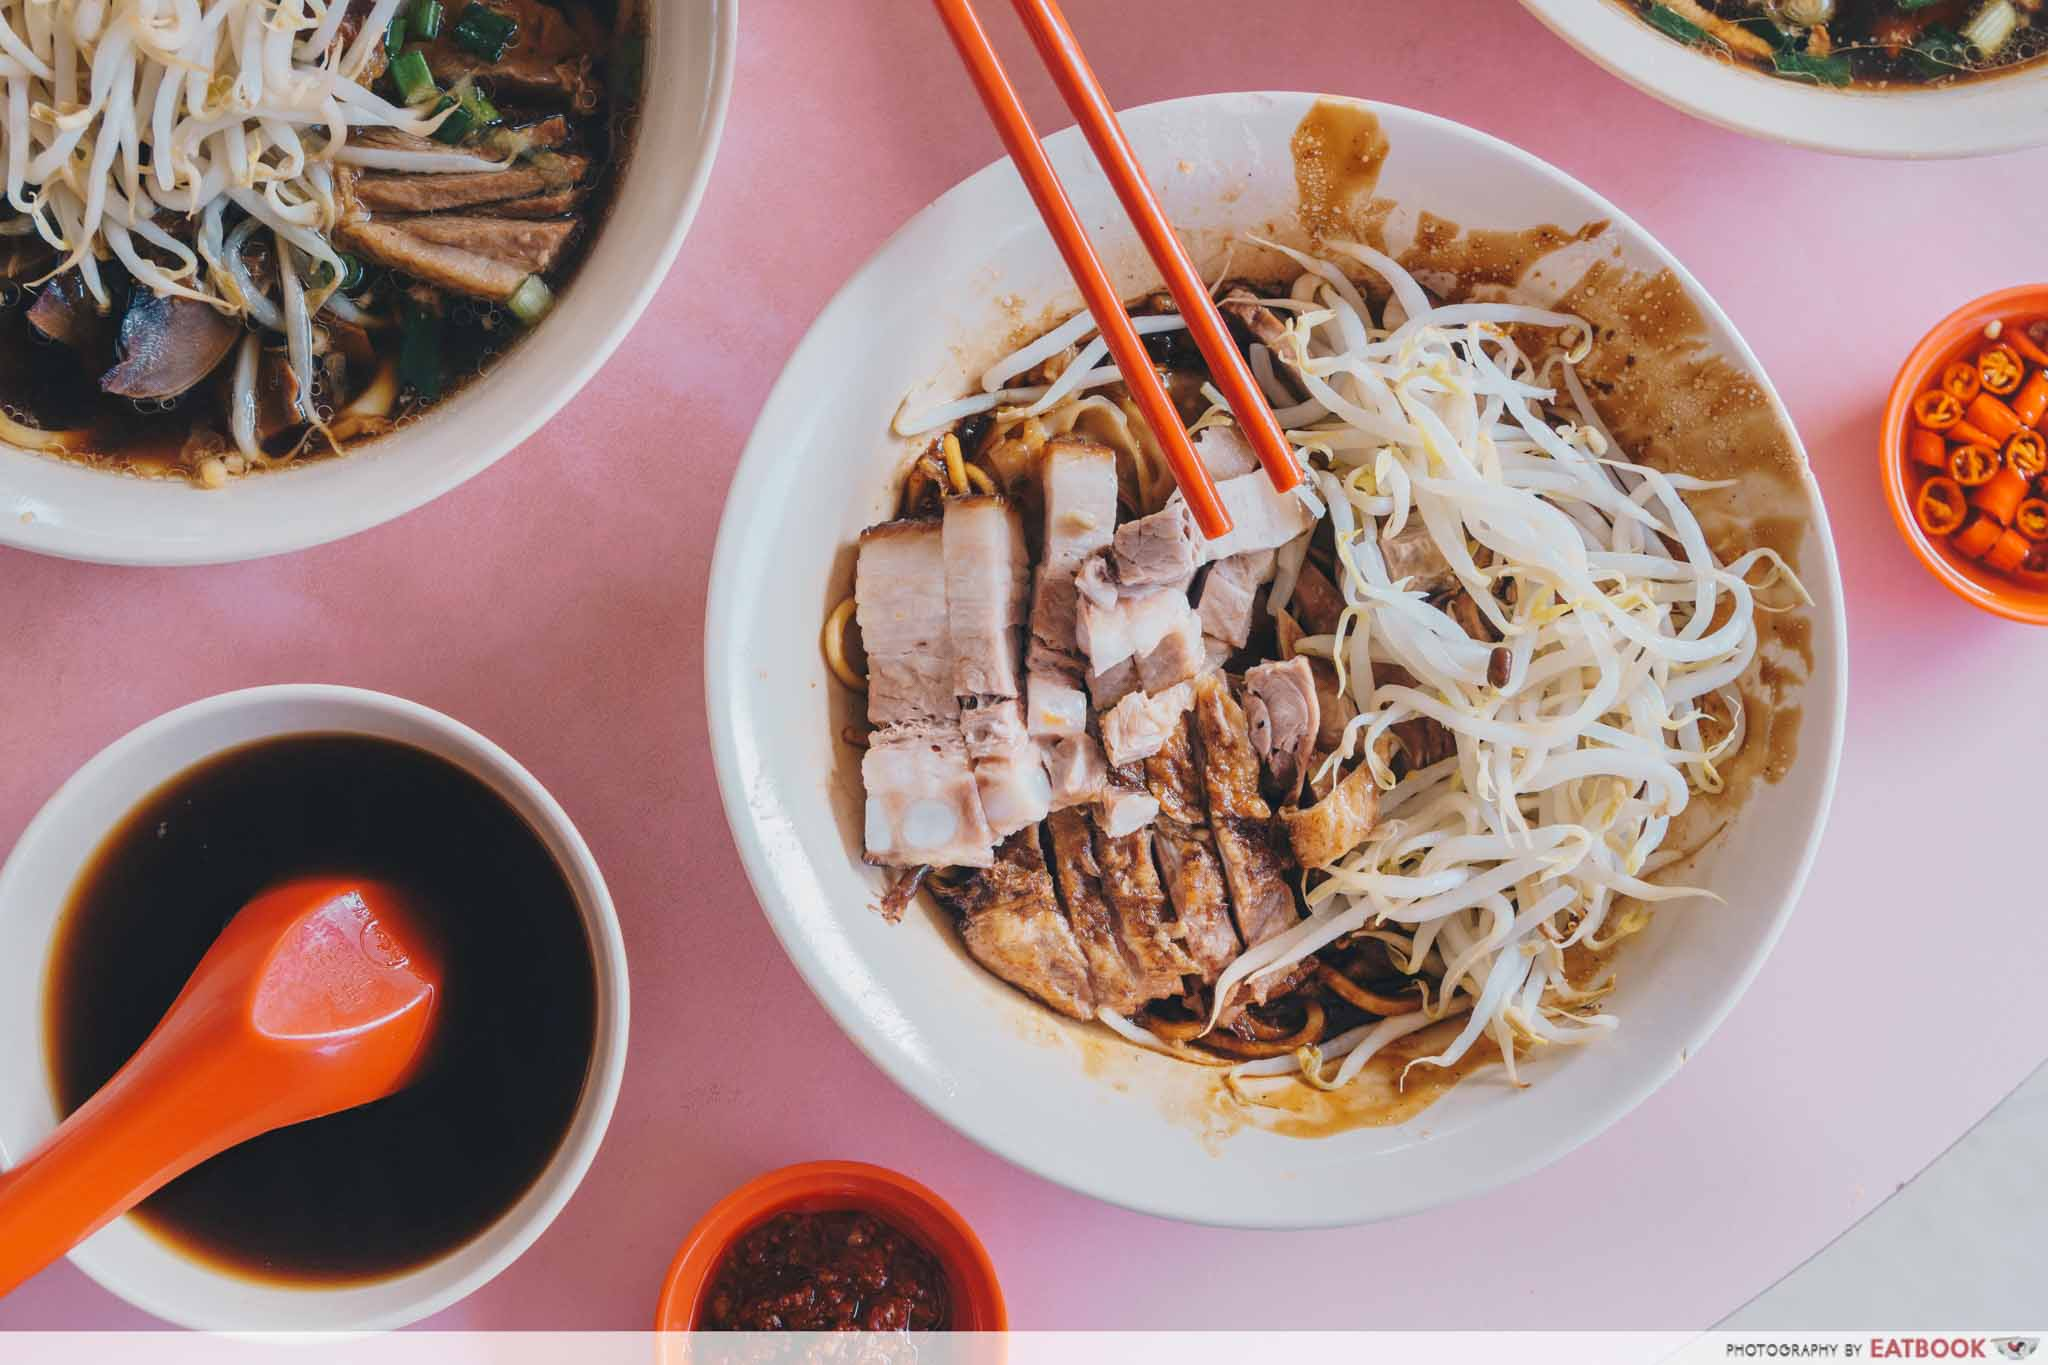 Heng Huat - Duck drumstick noodles with roasted pork